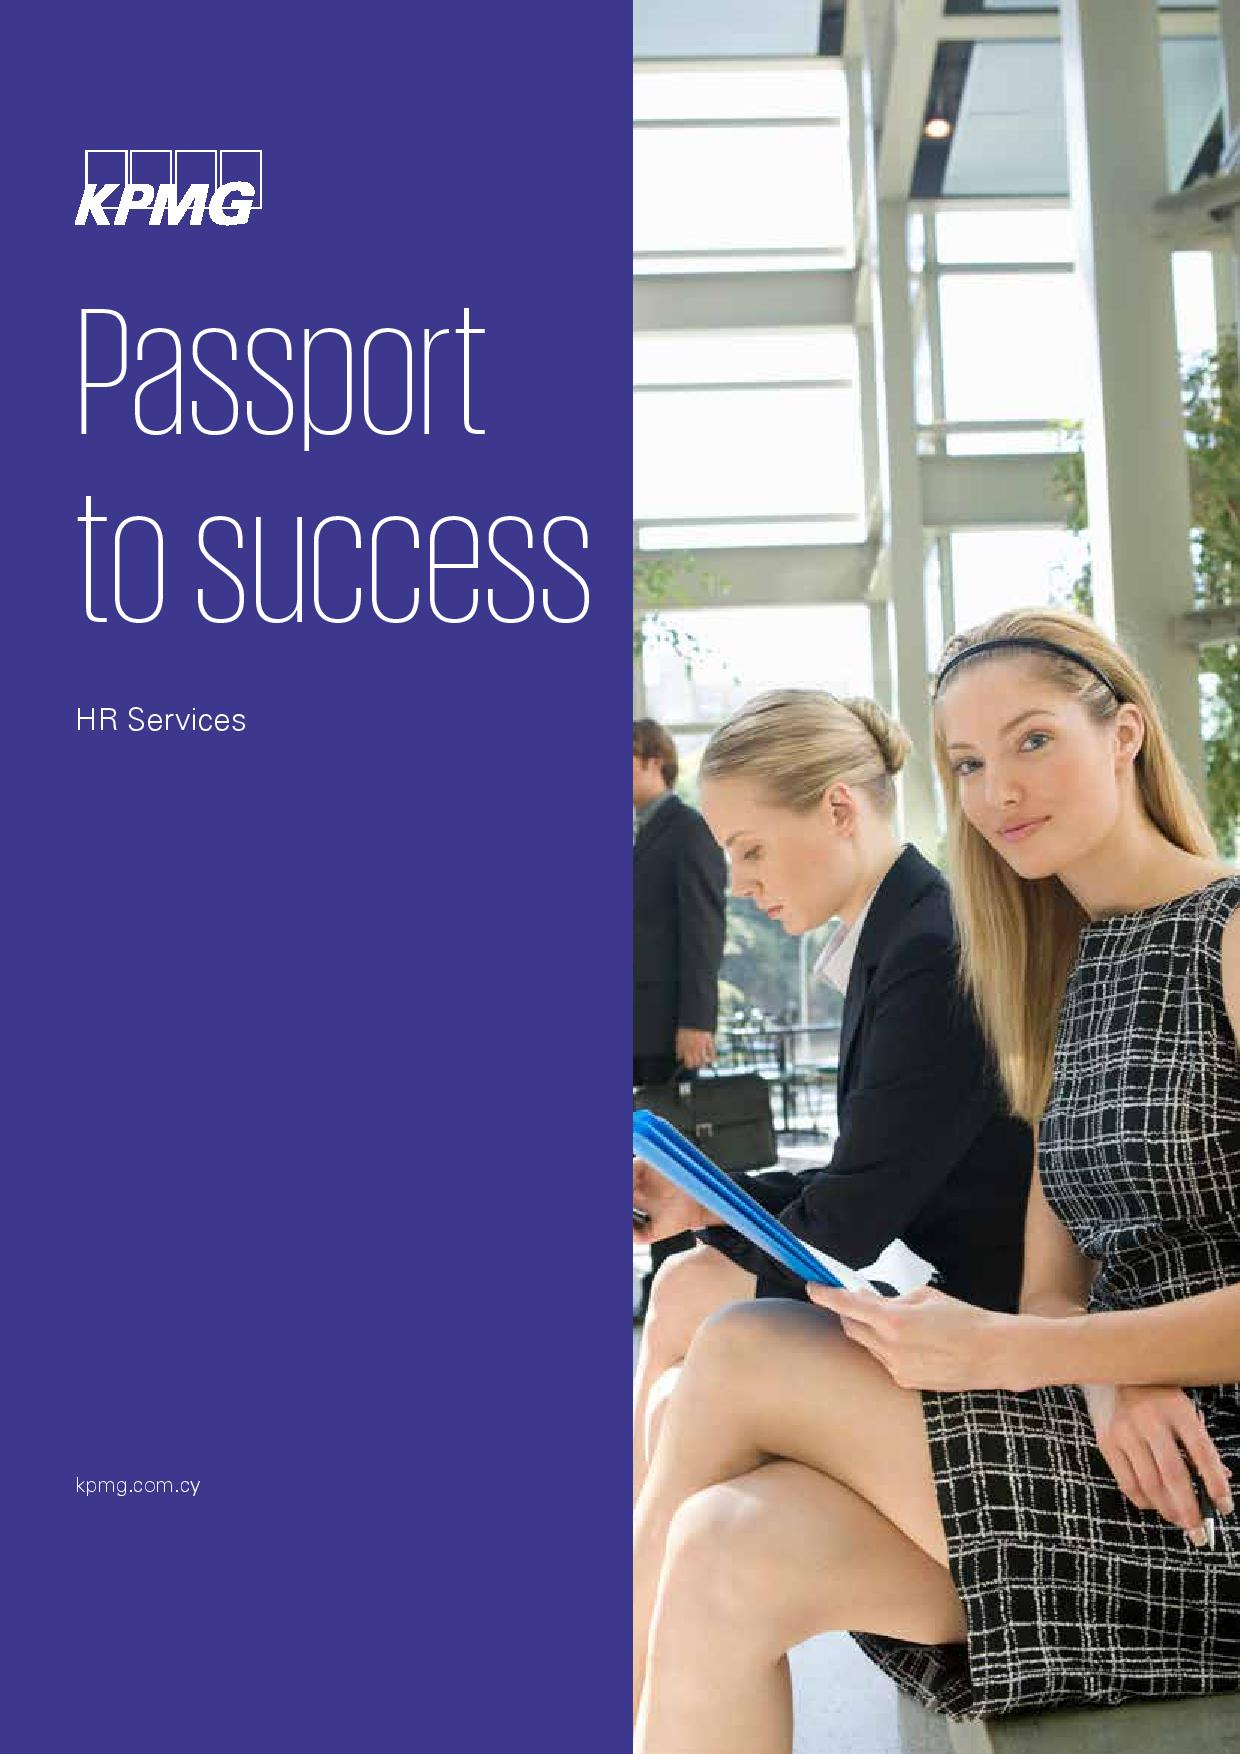 KPMG: Passport to success(HR)